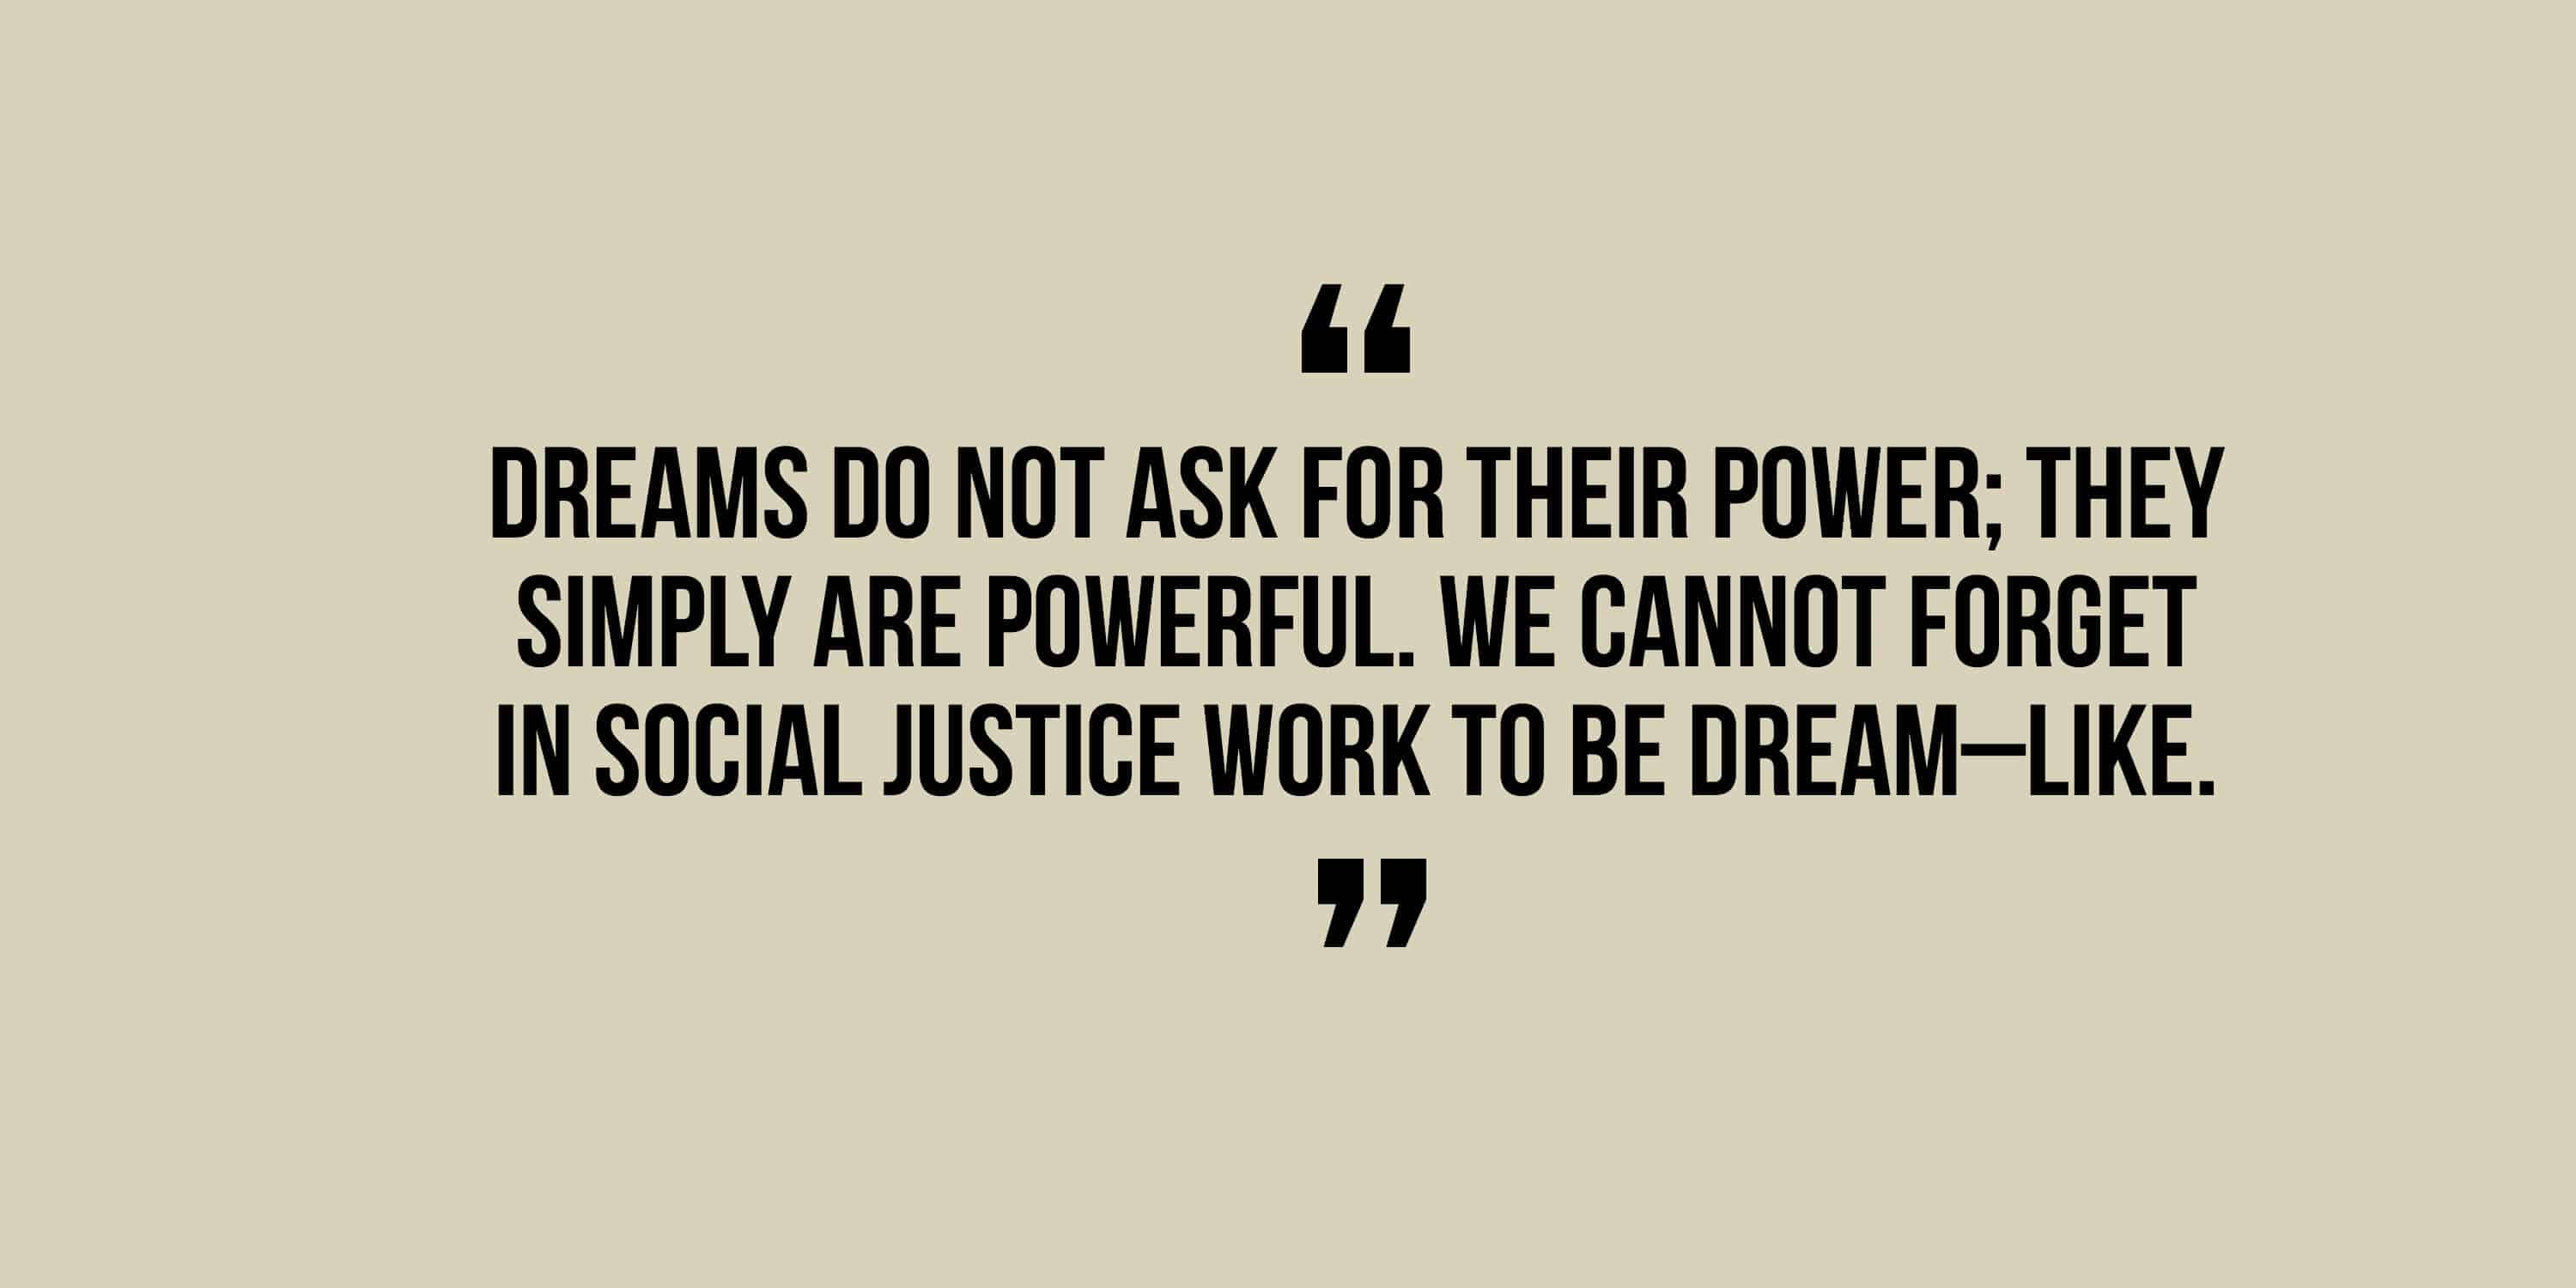 Dreams do not ask for their power...